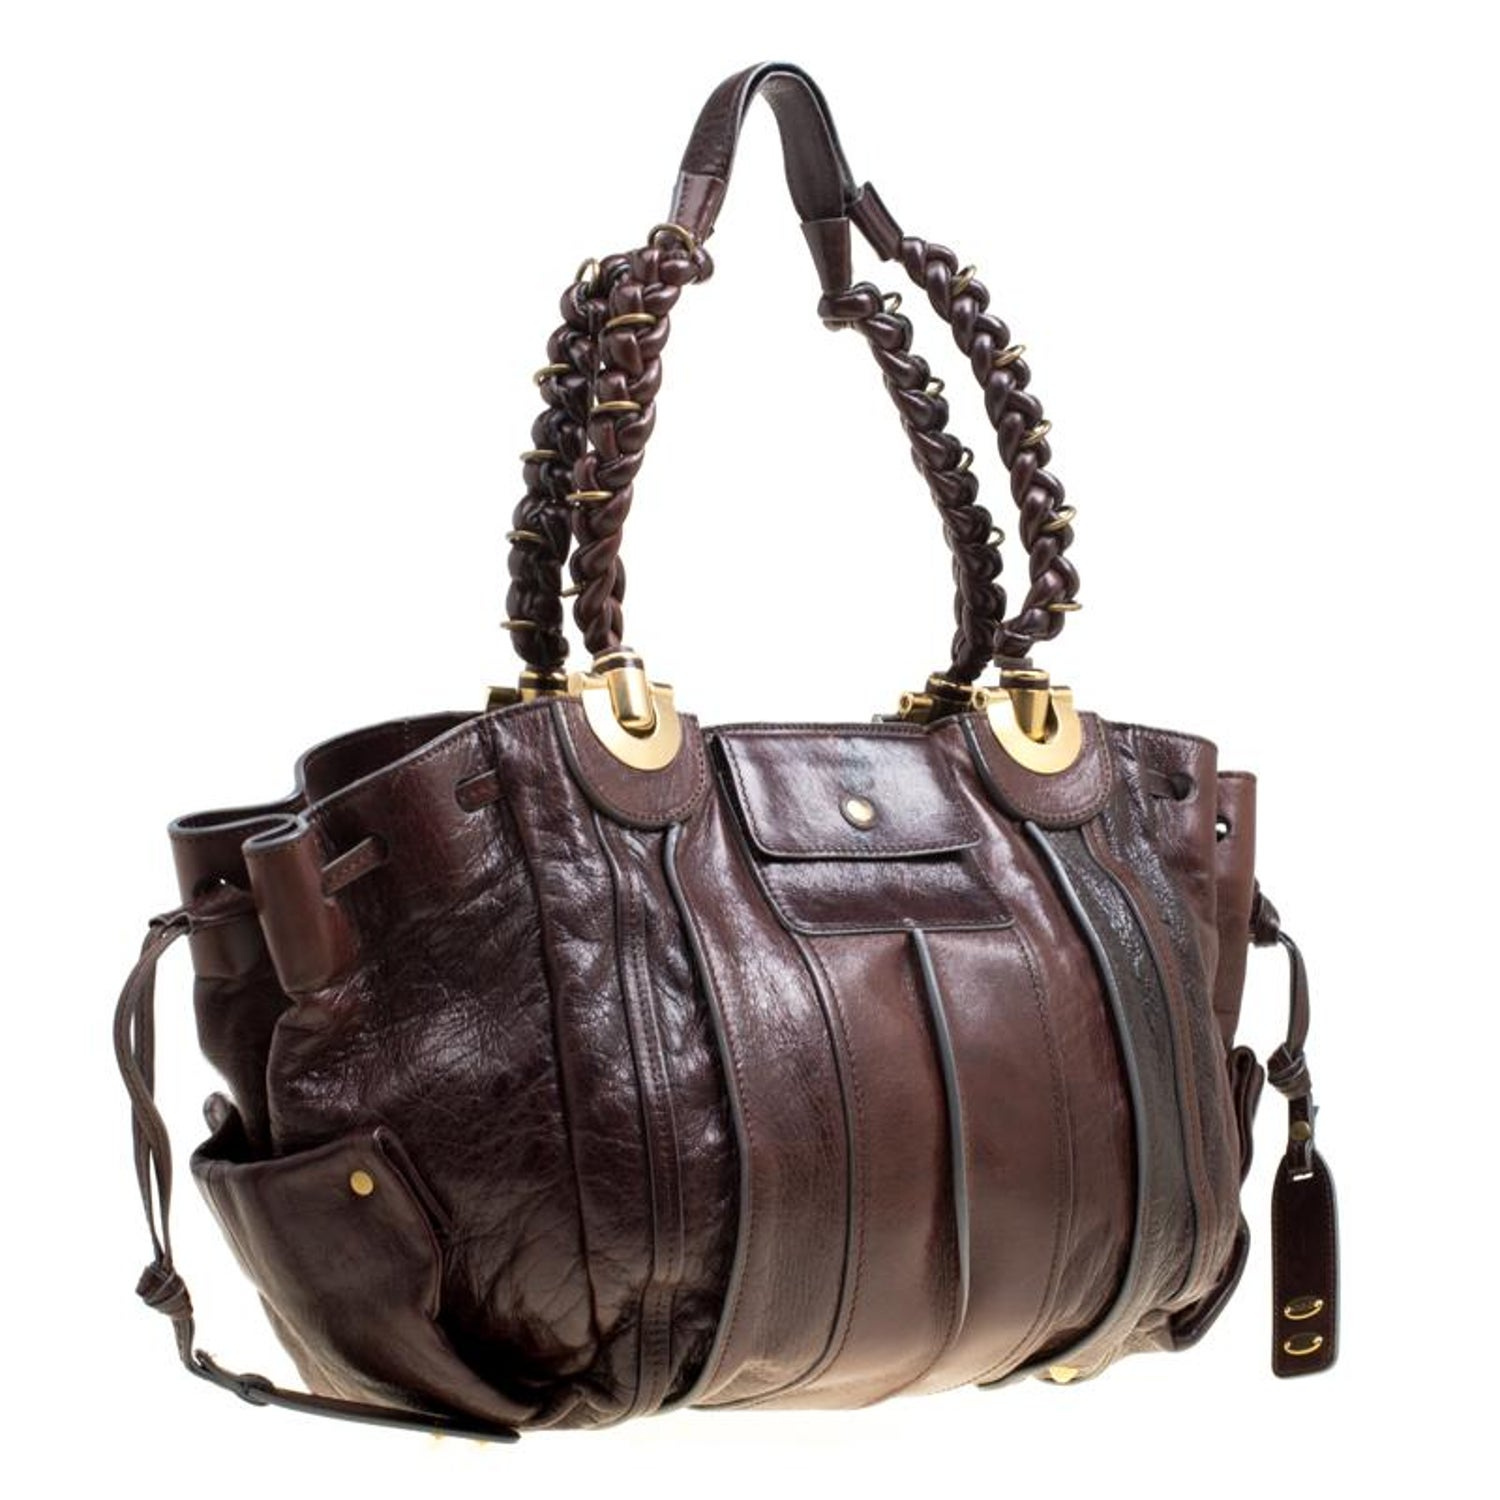 Chloe Brown Leather Heloise Drawstring Hobo For Sale at 1stdibs 82068774365f3